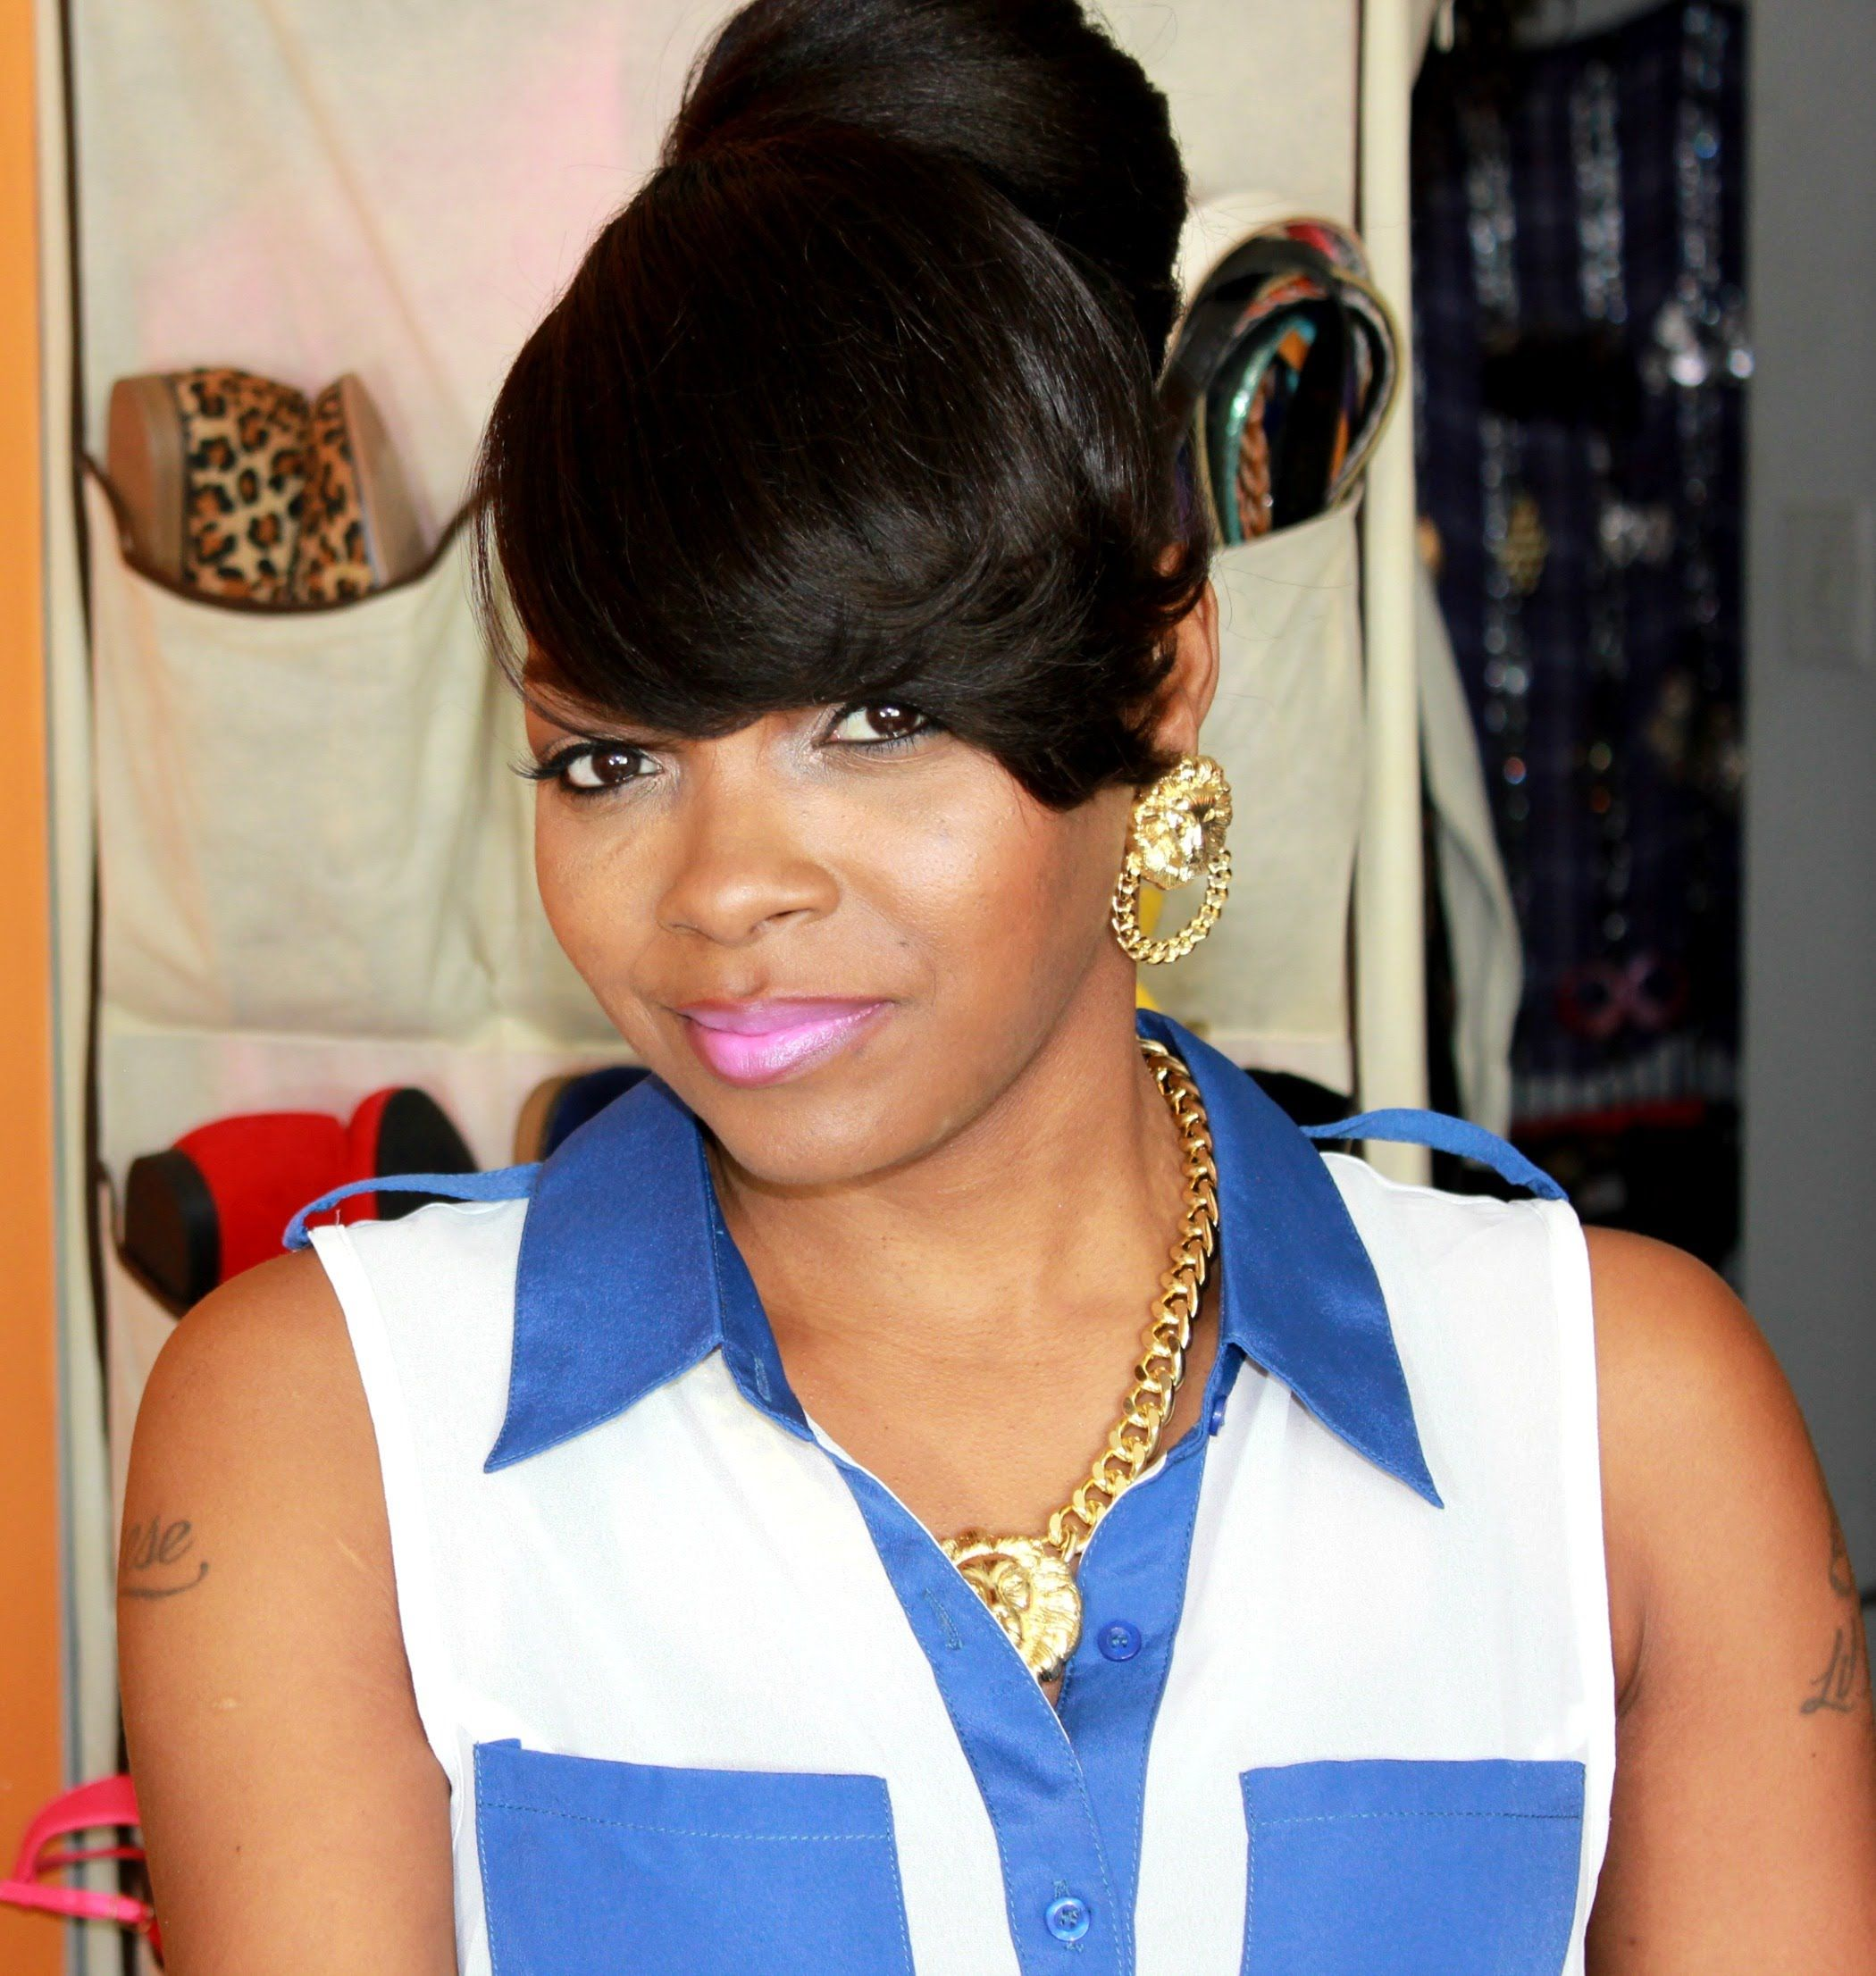 Pleasant 1000 Images About Hair On Pinterest Buns Bangs And Chinese Bangs Short Hairstyles For Black Women Fulllsitofus